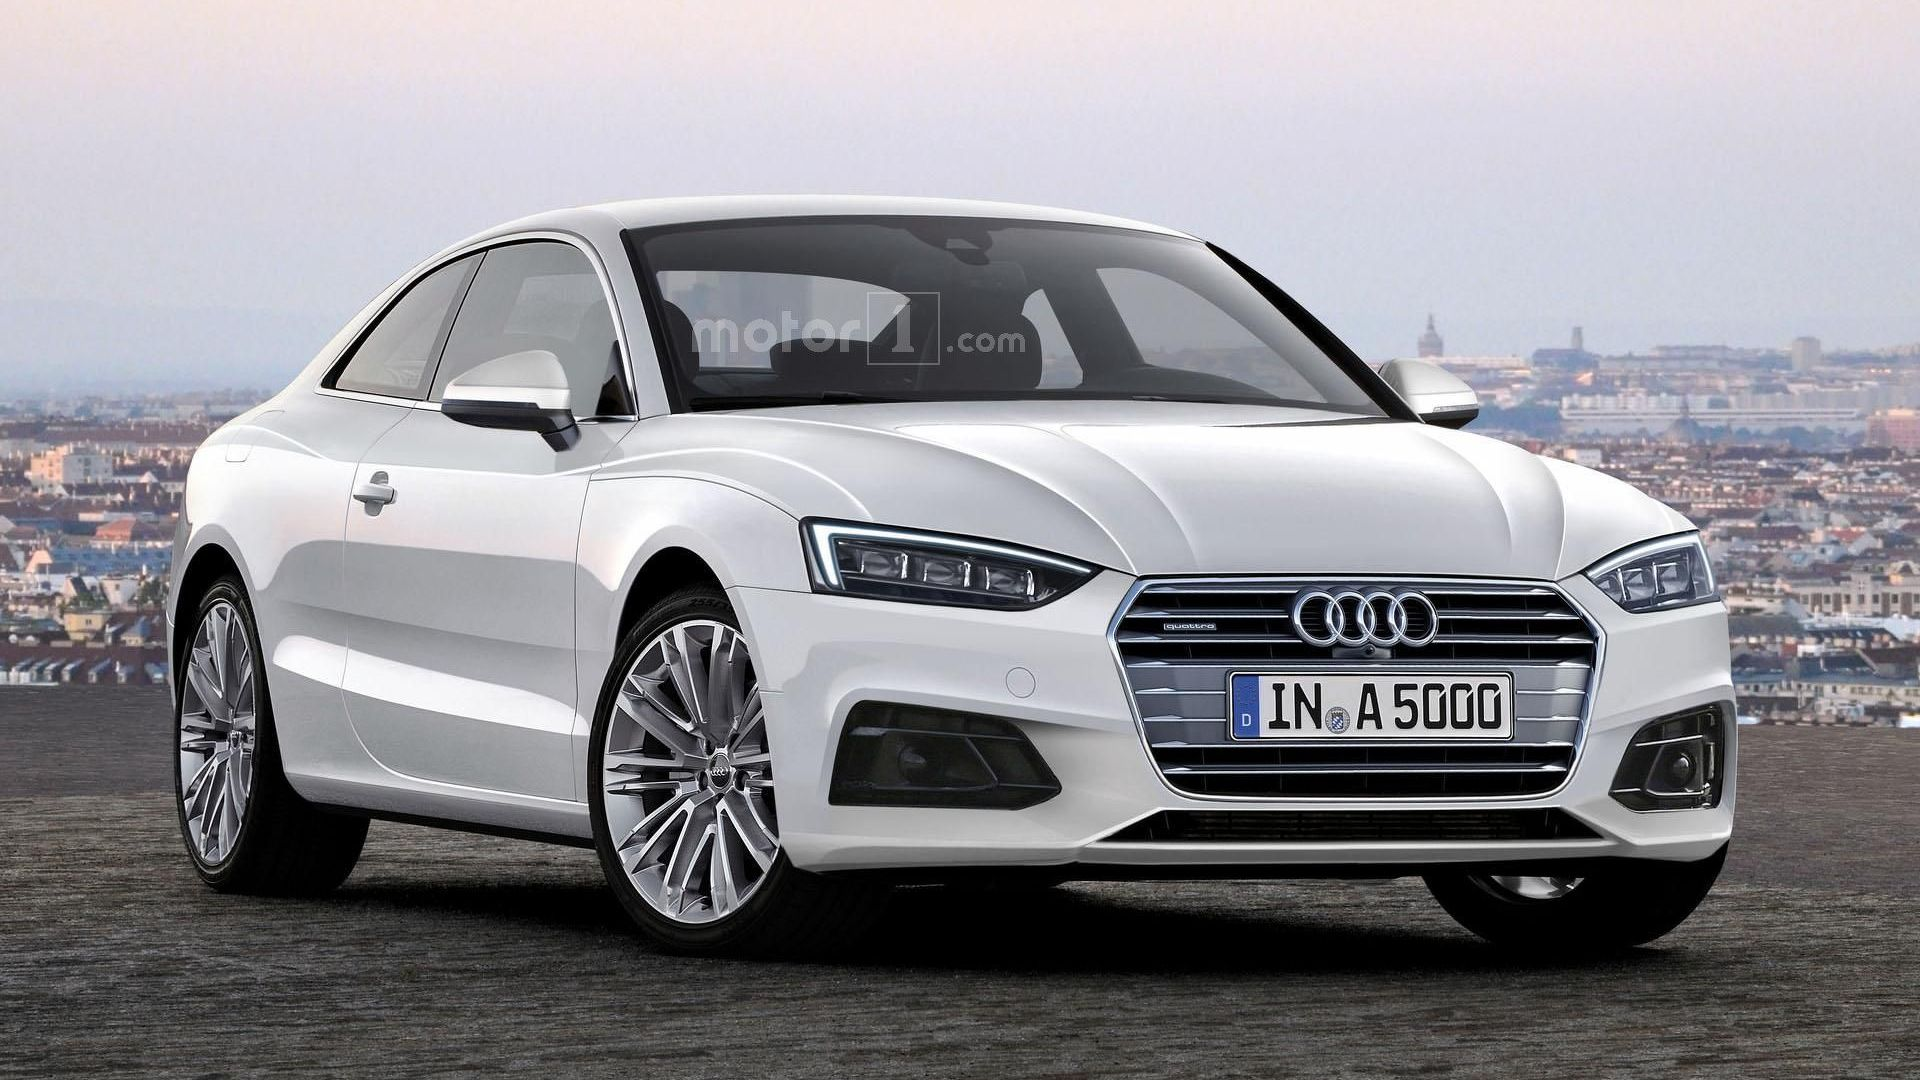 Best Buy Used Cars >> 2017 Audi A5 Coupe looks rather stylish in new rendering